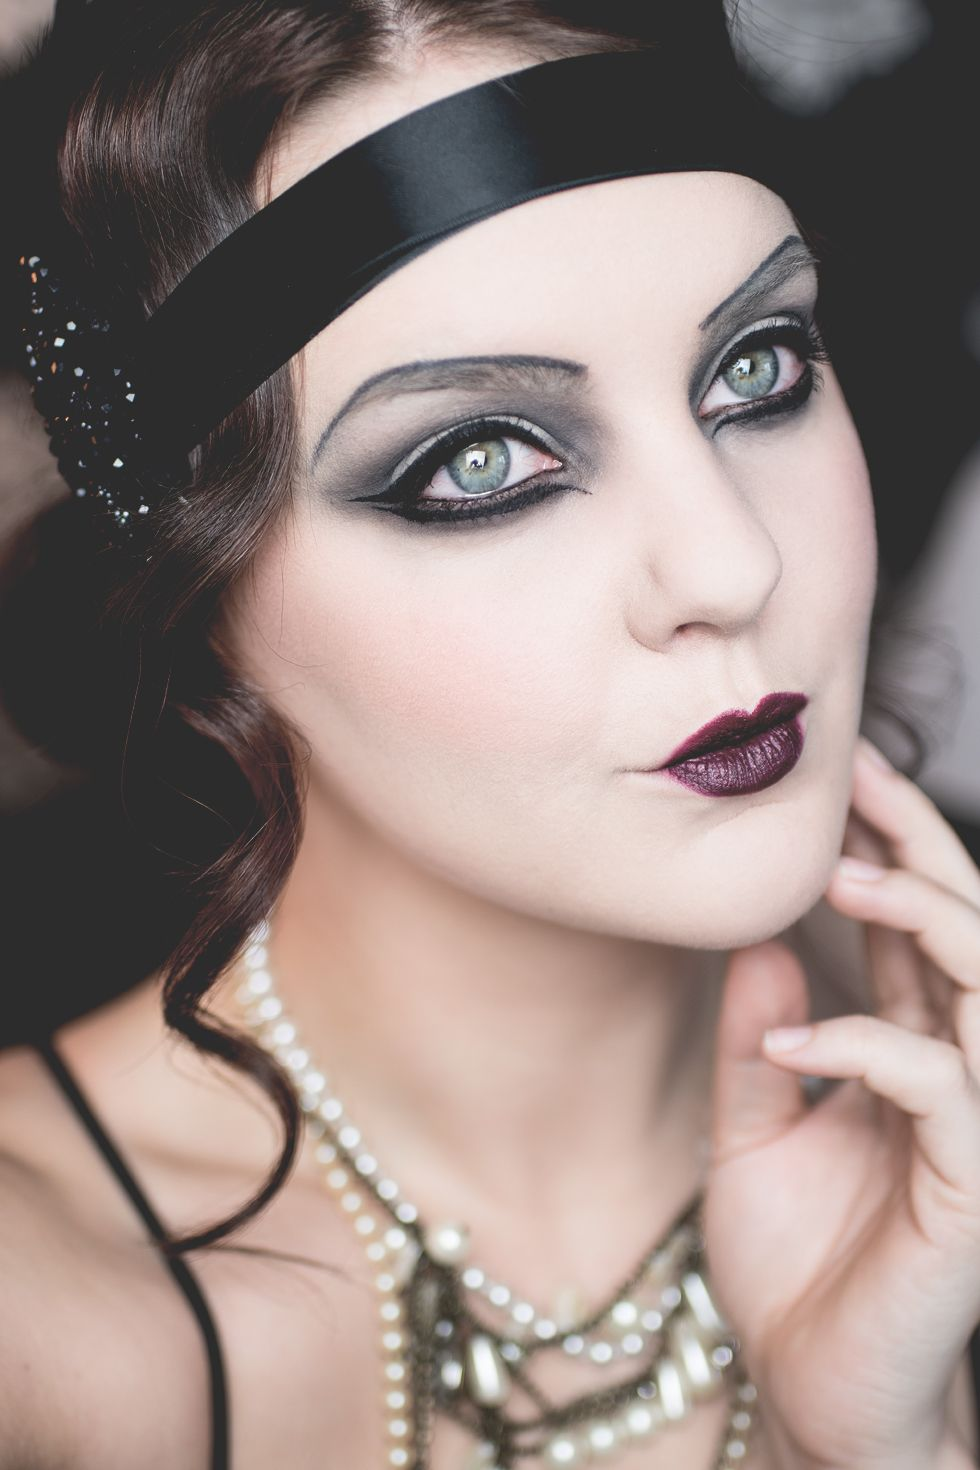 Isadora Halloween The Great Gatsby 20s Makeup 1920s Hair - 20s-makeup